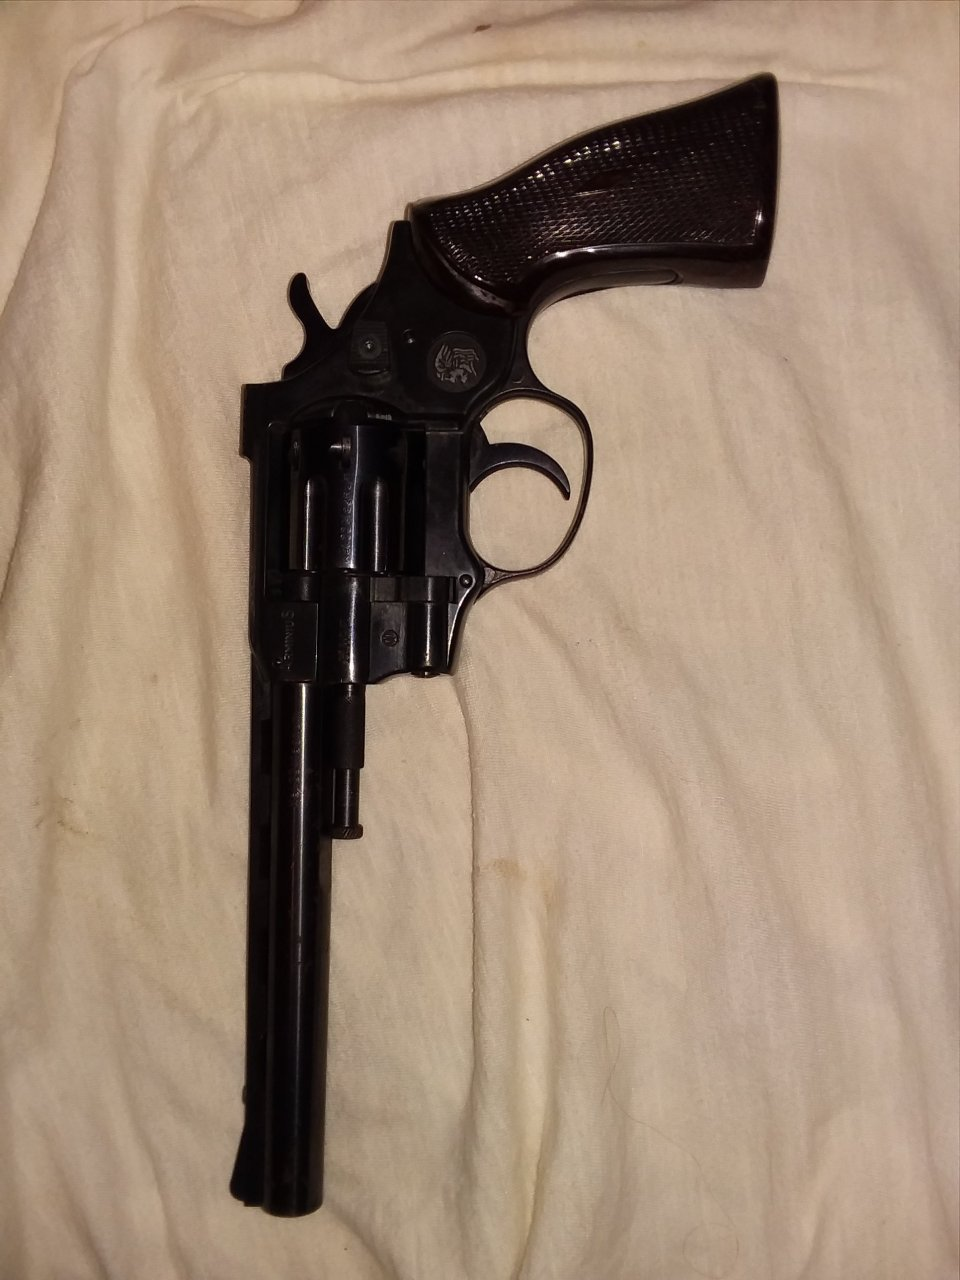 Value Of German Made, ArminuS HW7, 8 Shot Revolver  22 Mag  Pictures